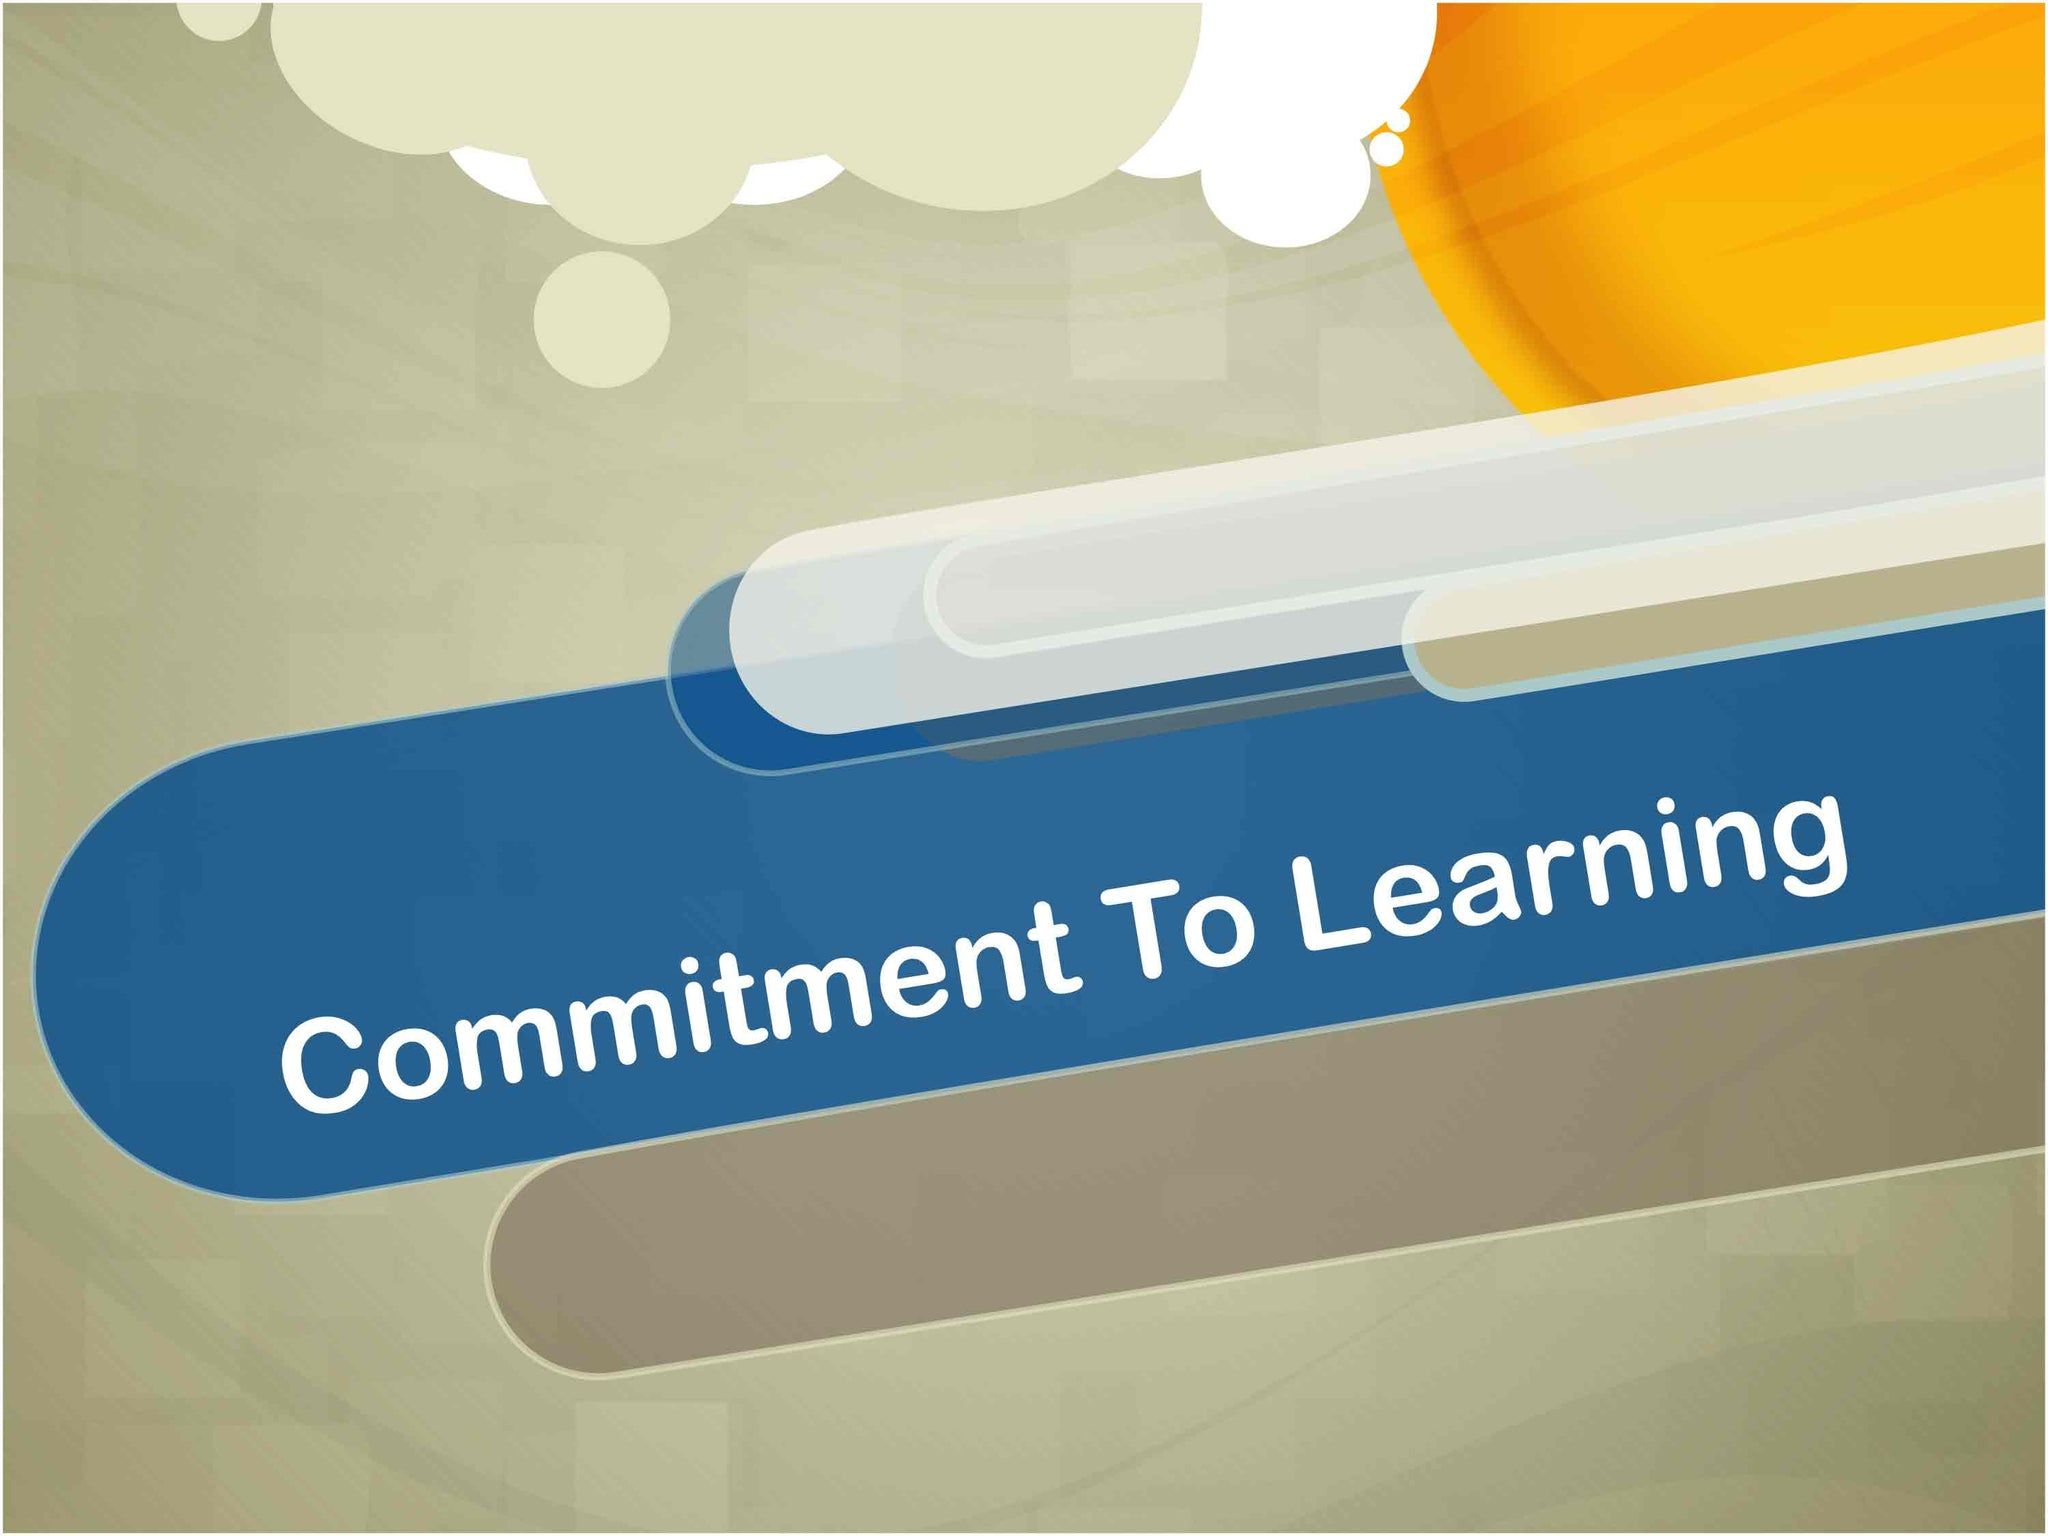 Commitment to Learning